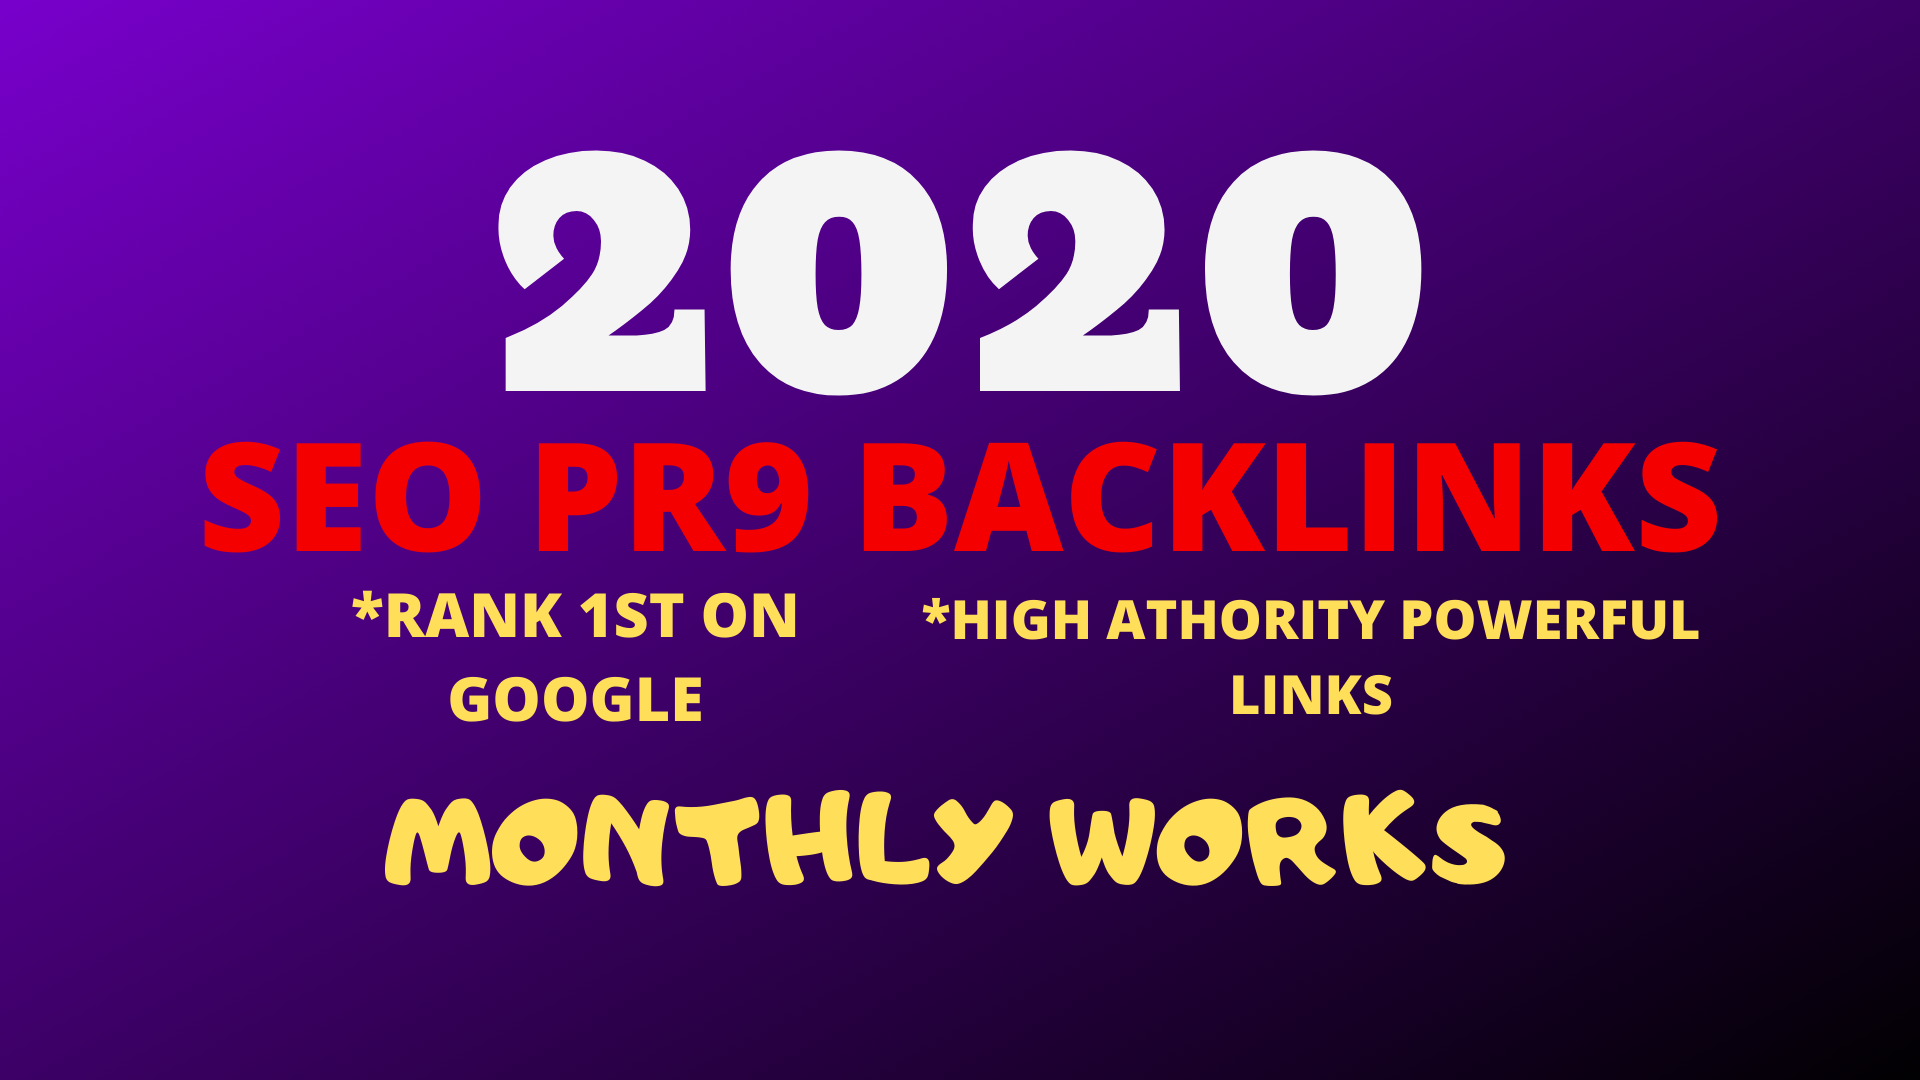 give you every day 40 SEO pr9 dofollow backlinks rank on Google monthly